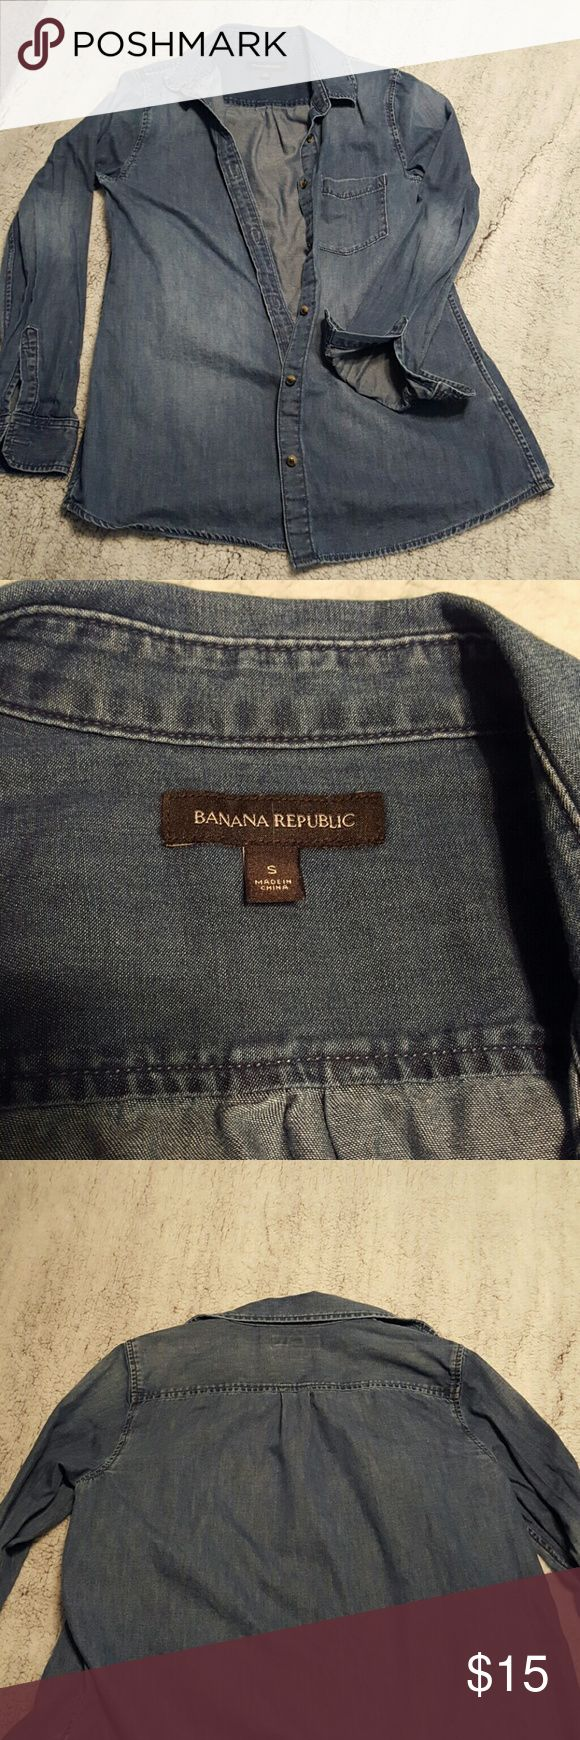 Banana Republic Chambray Small Chambray that is nice and long and roomy, not fitted, perfect for leggings and tights and tall boots Banana Republic Tops Button Down Shirts